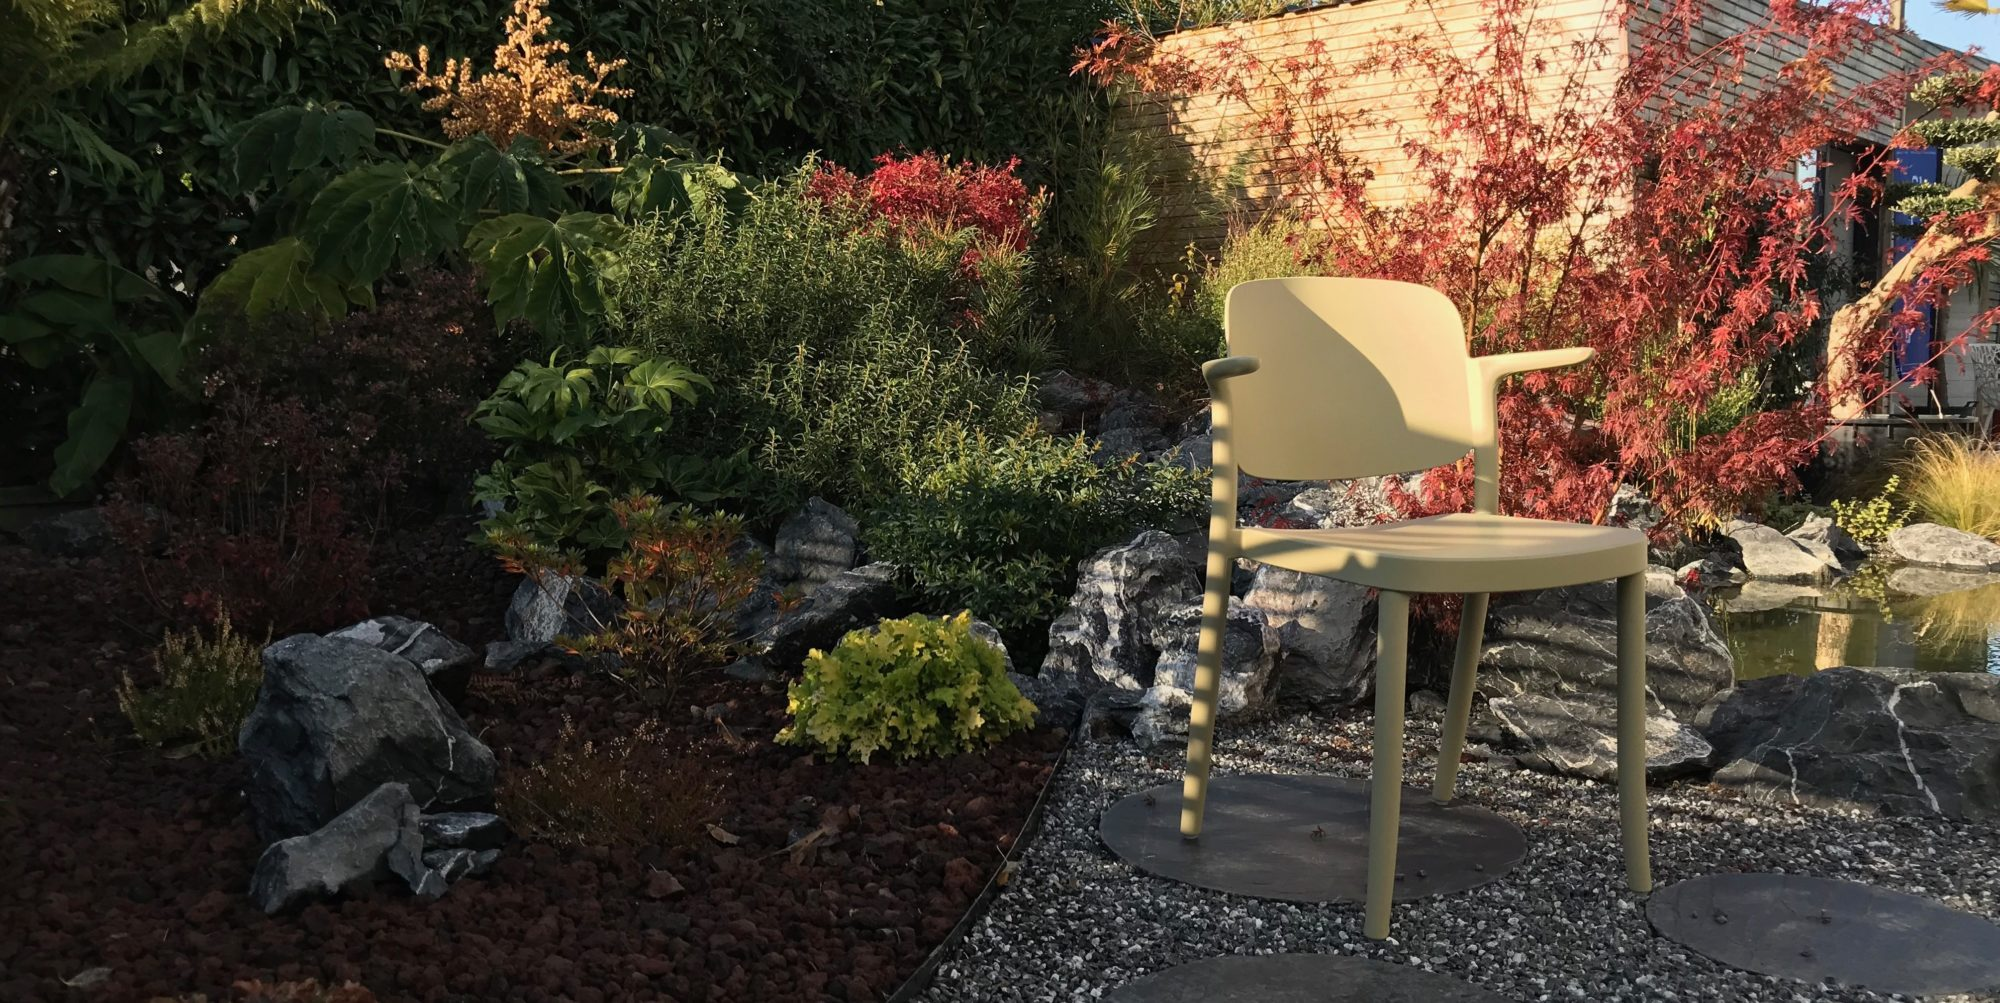 100 Remarquable Suggestions Mobilier De Jardin Gironde